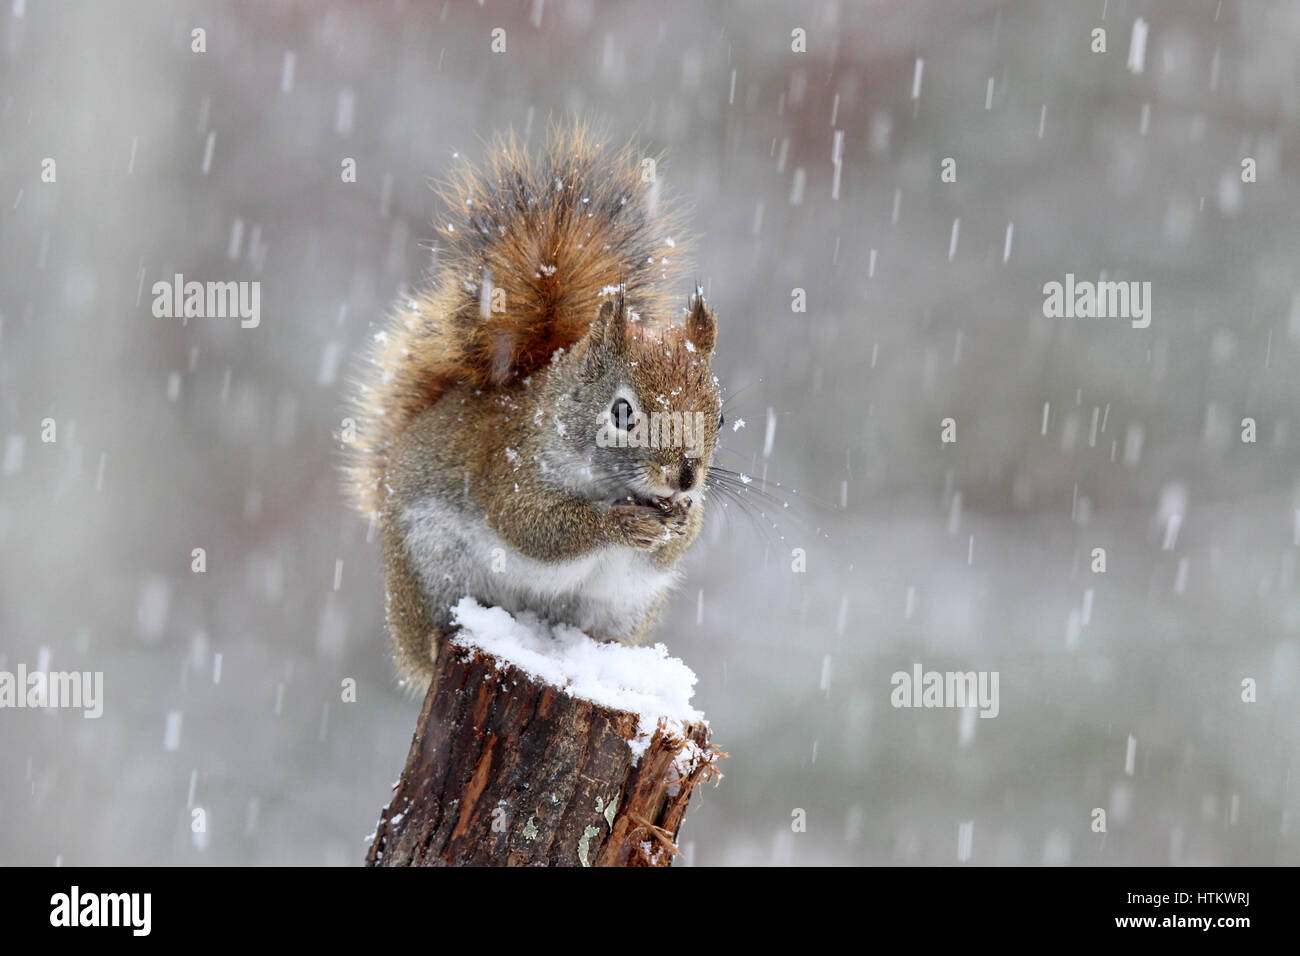 A little red squirrel eating food in a snowstorm - Stock Image